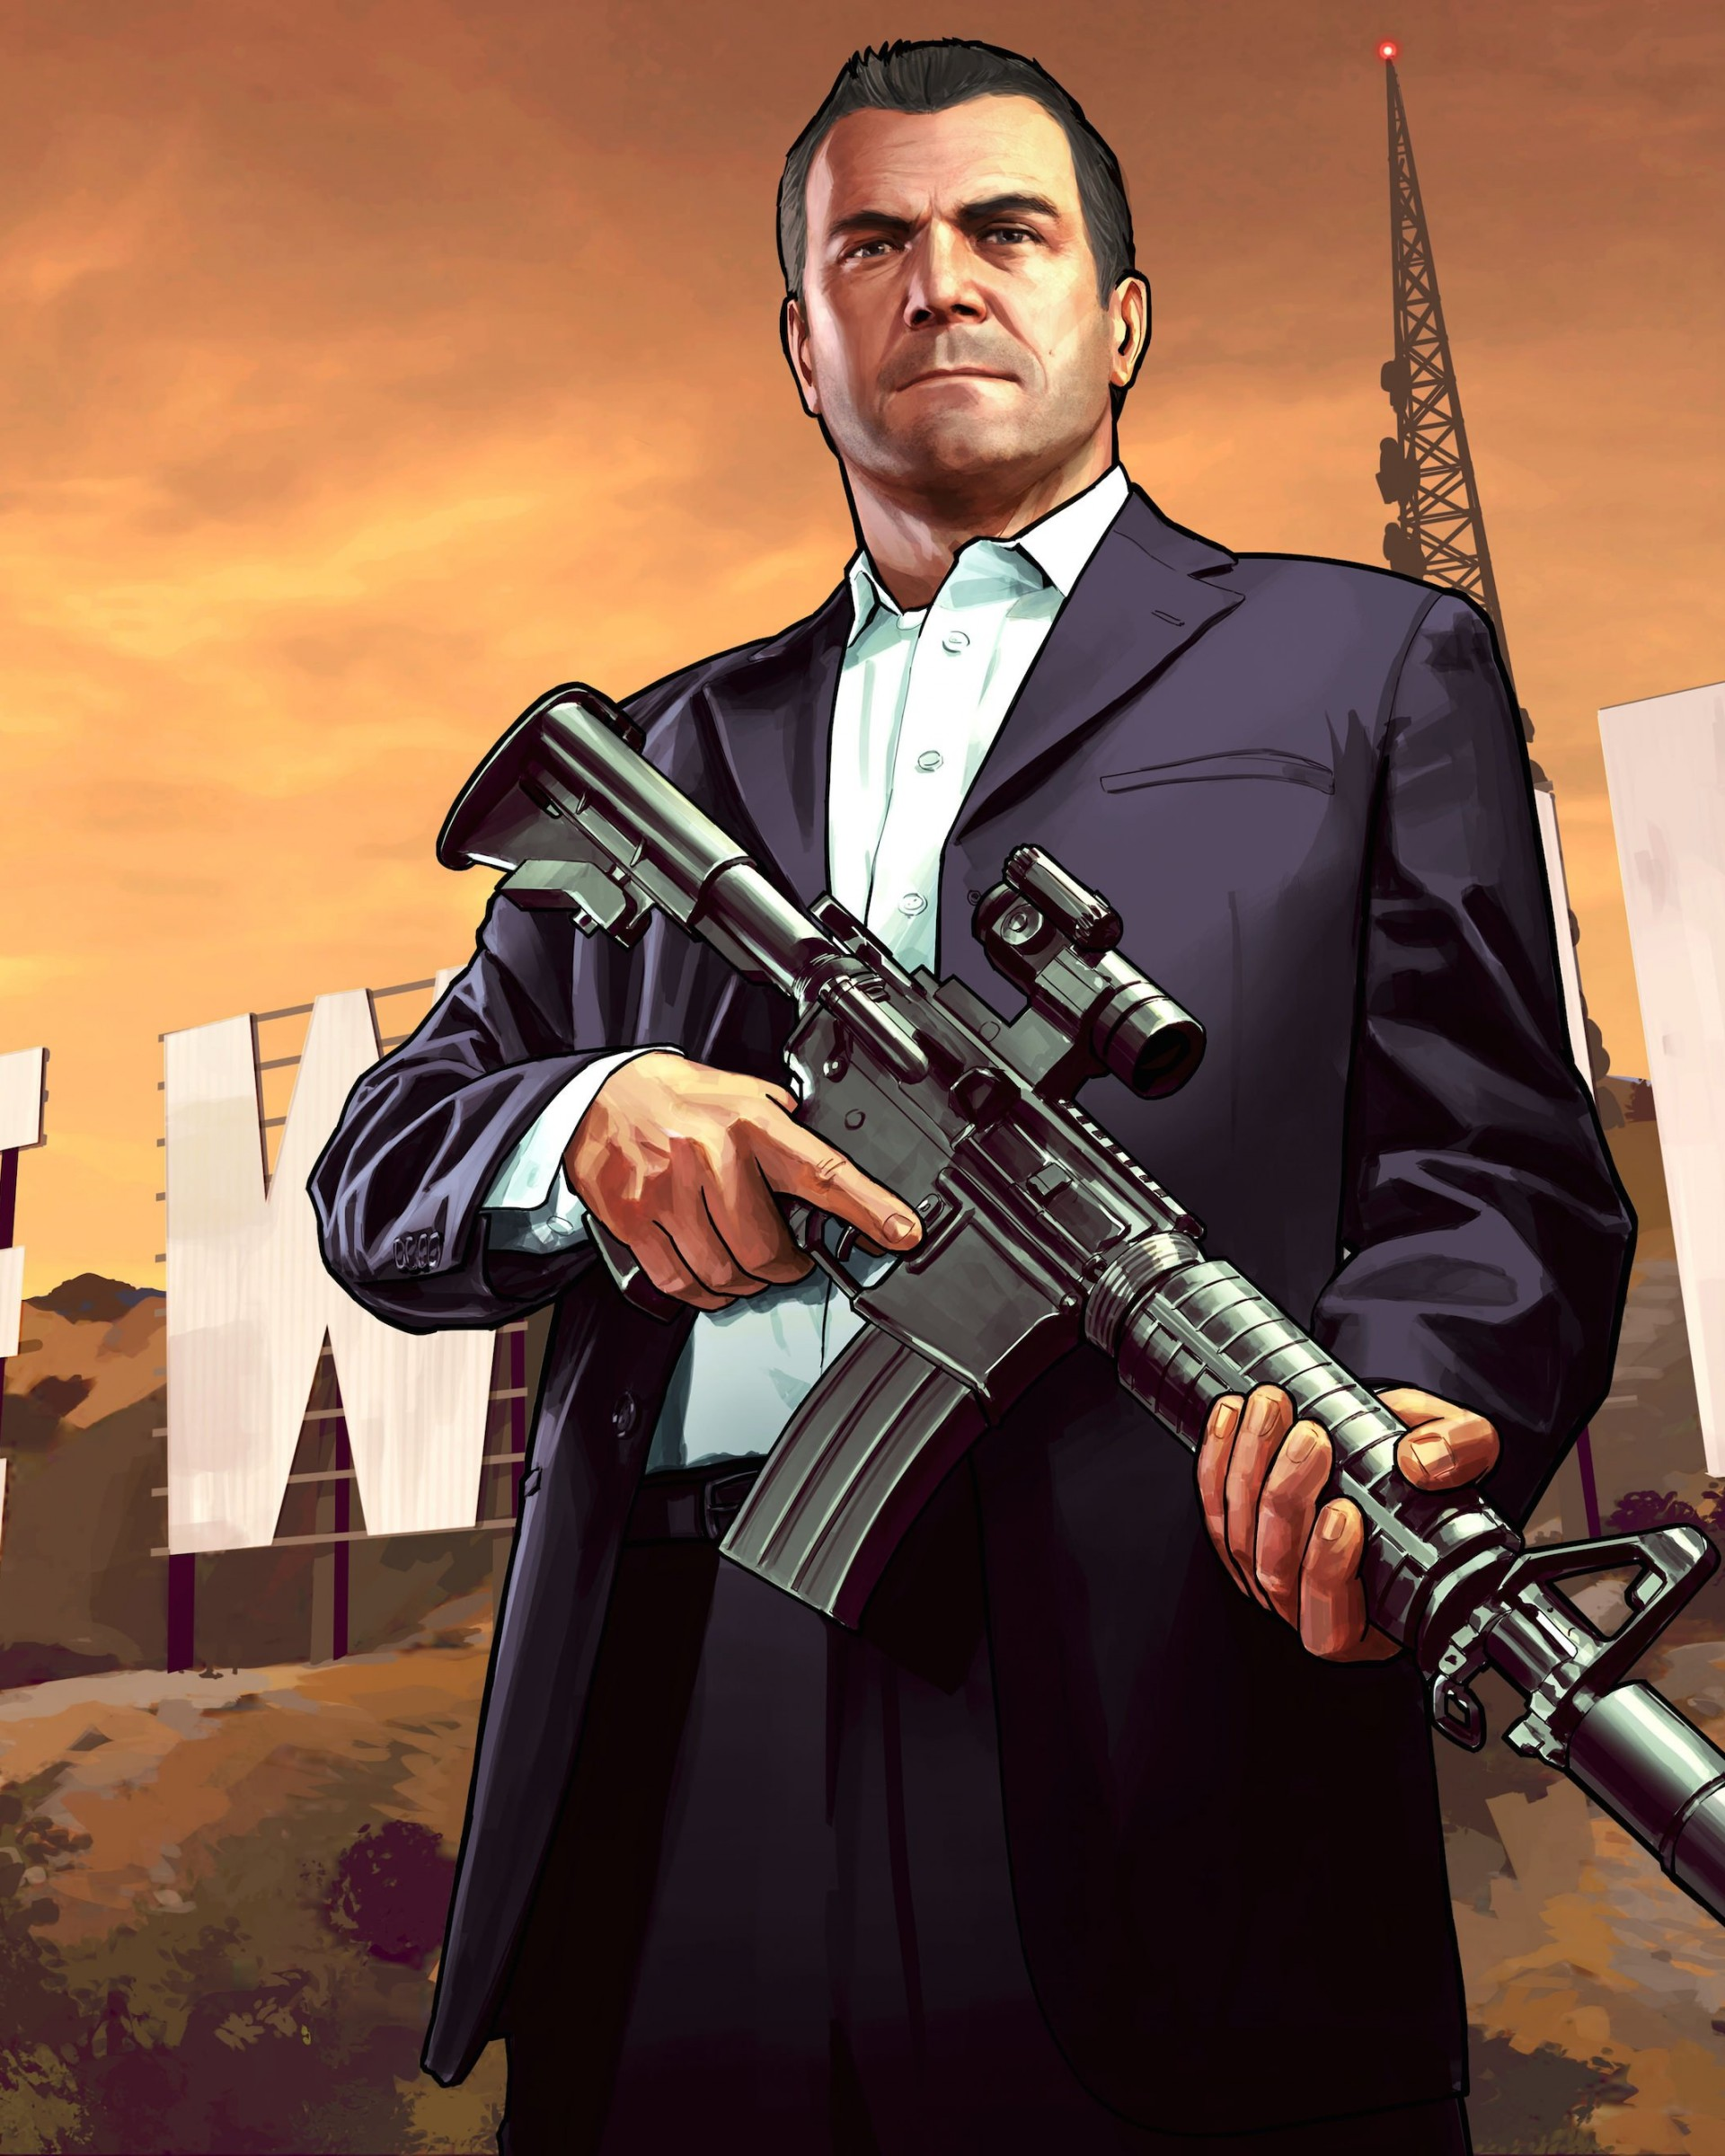 GTA 5 : Michael De Santa Wallpaper for Google Nexus 7